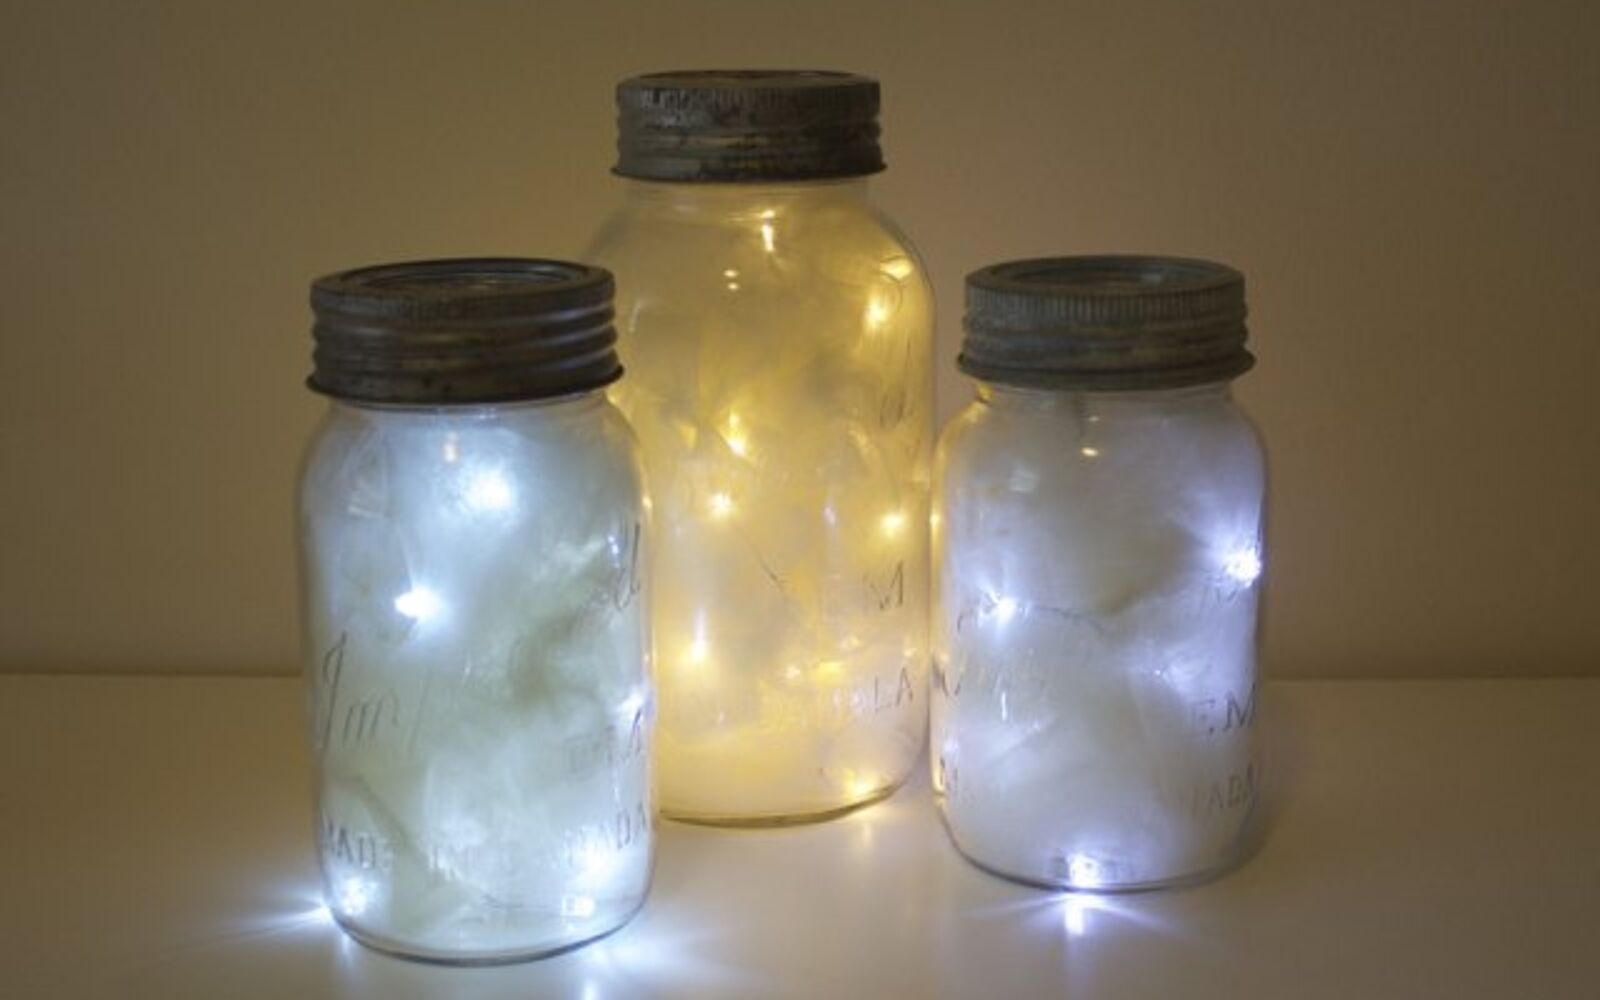 s 30 great mason jar ideas you have to try, Have Shimmering Lights Inside A Mason Jar